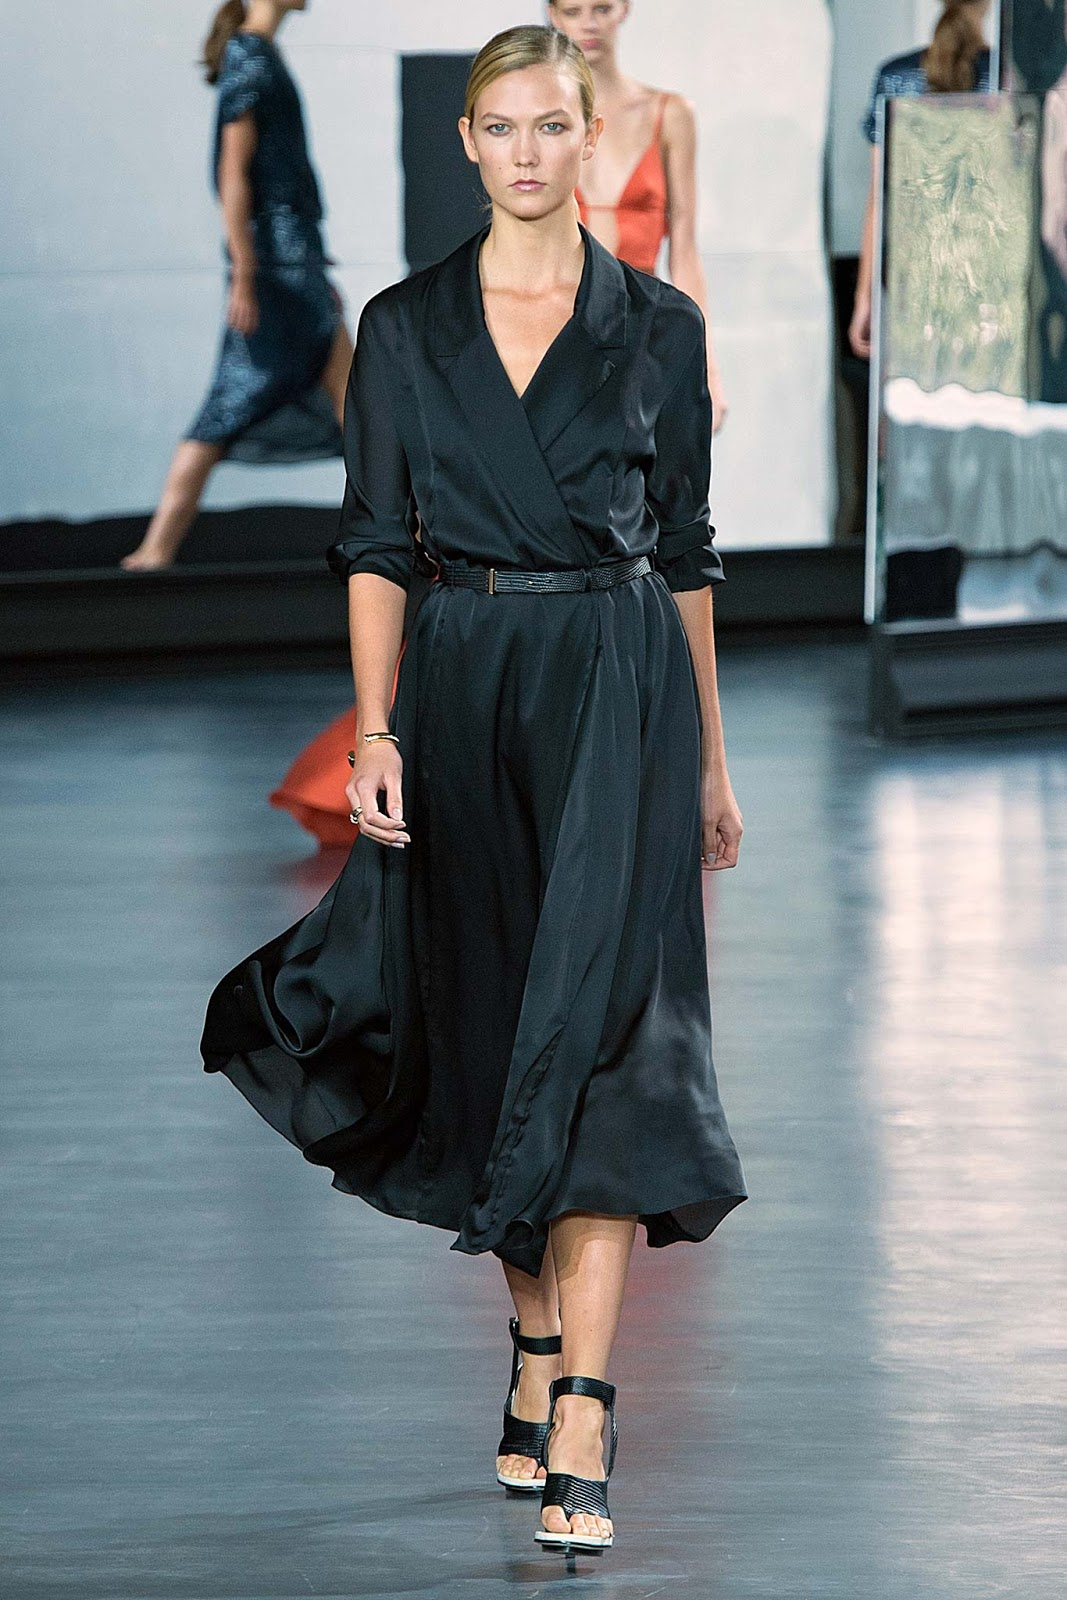 spring/summer 2015 trends / shirtdress / history of shirt dress / jason wu spring 2015 / via fashioned by love british fashion blog